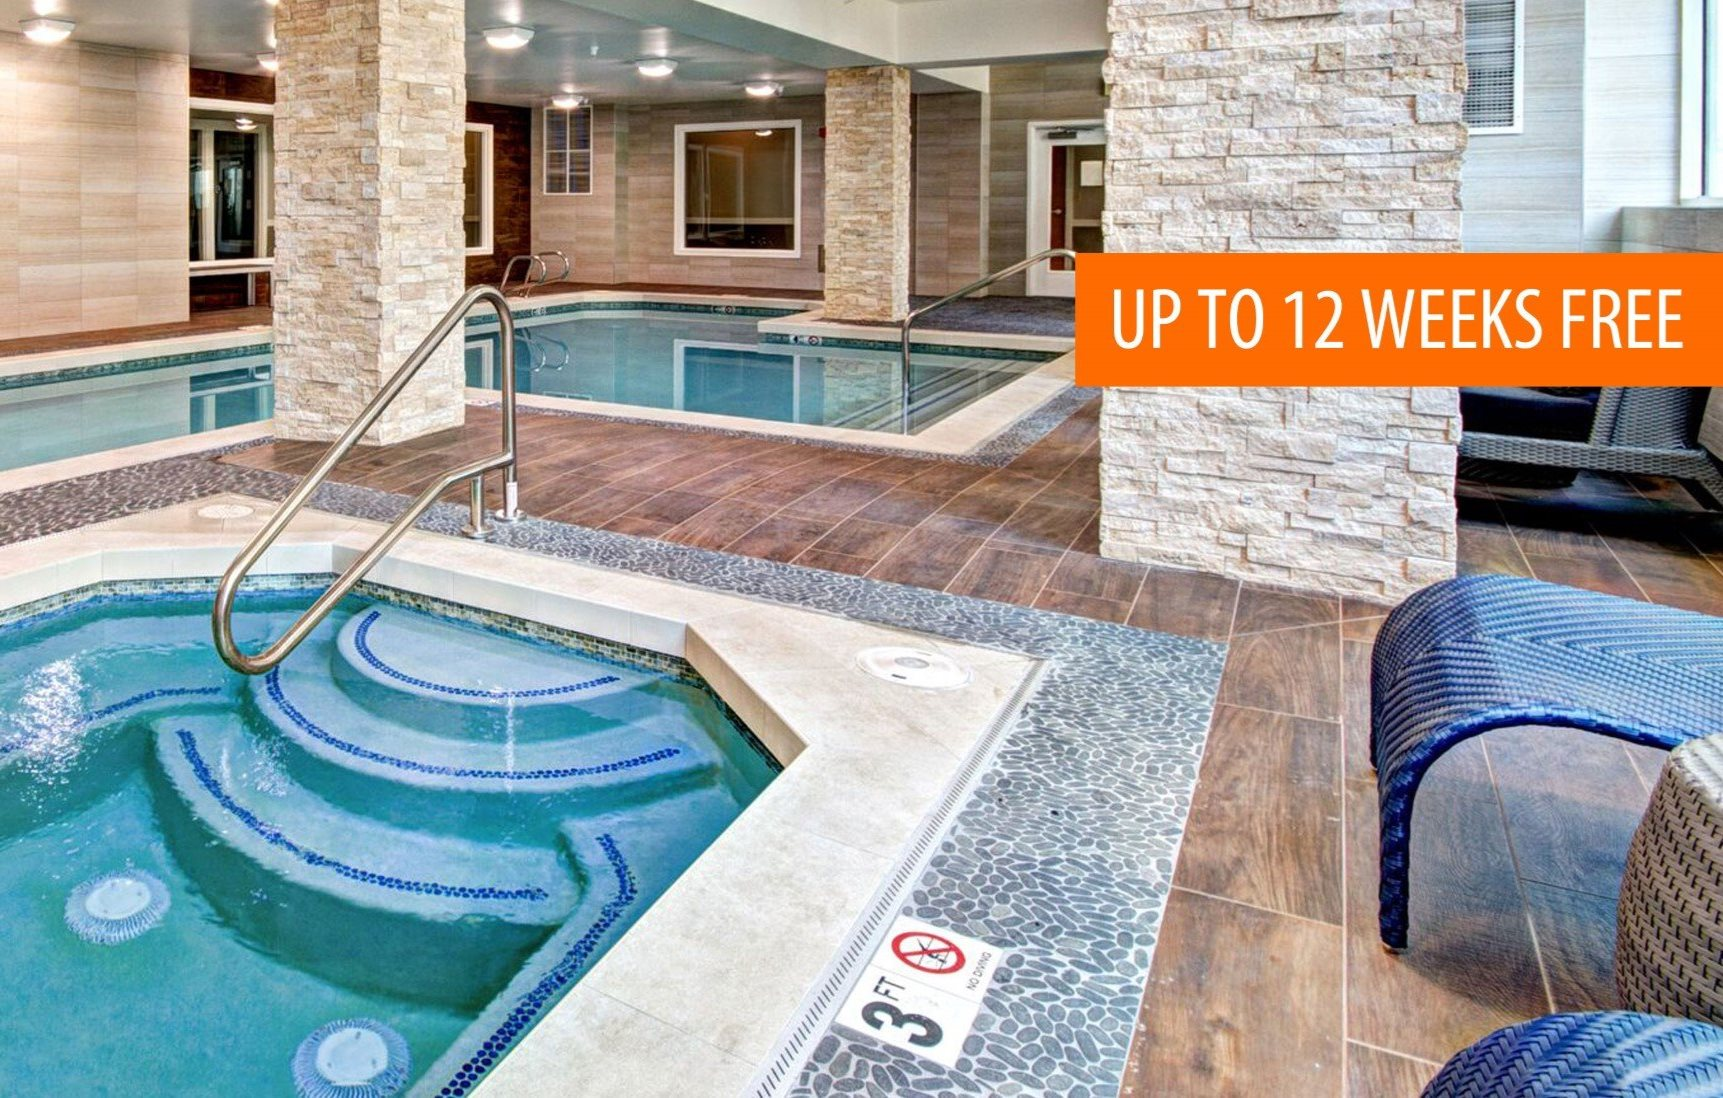 Met Tower Apartments Indoor Pool and Spa with 12 Weeks Free Banner